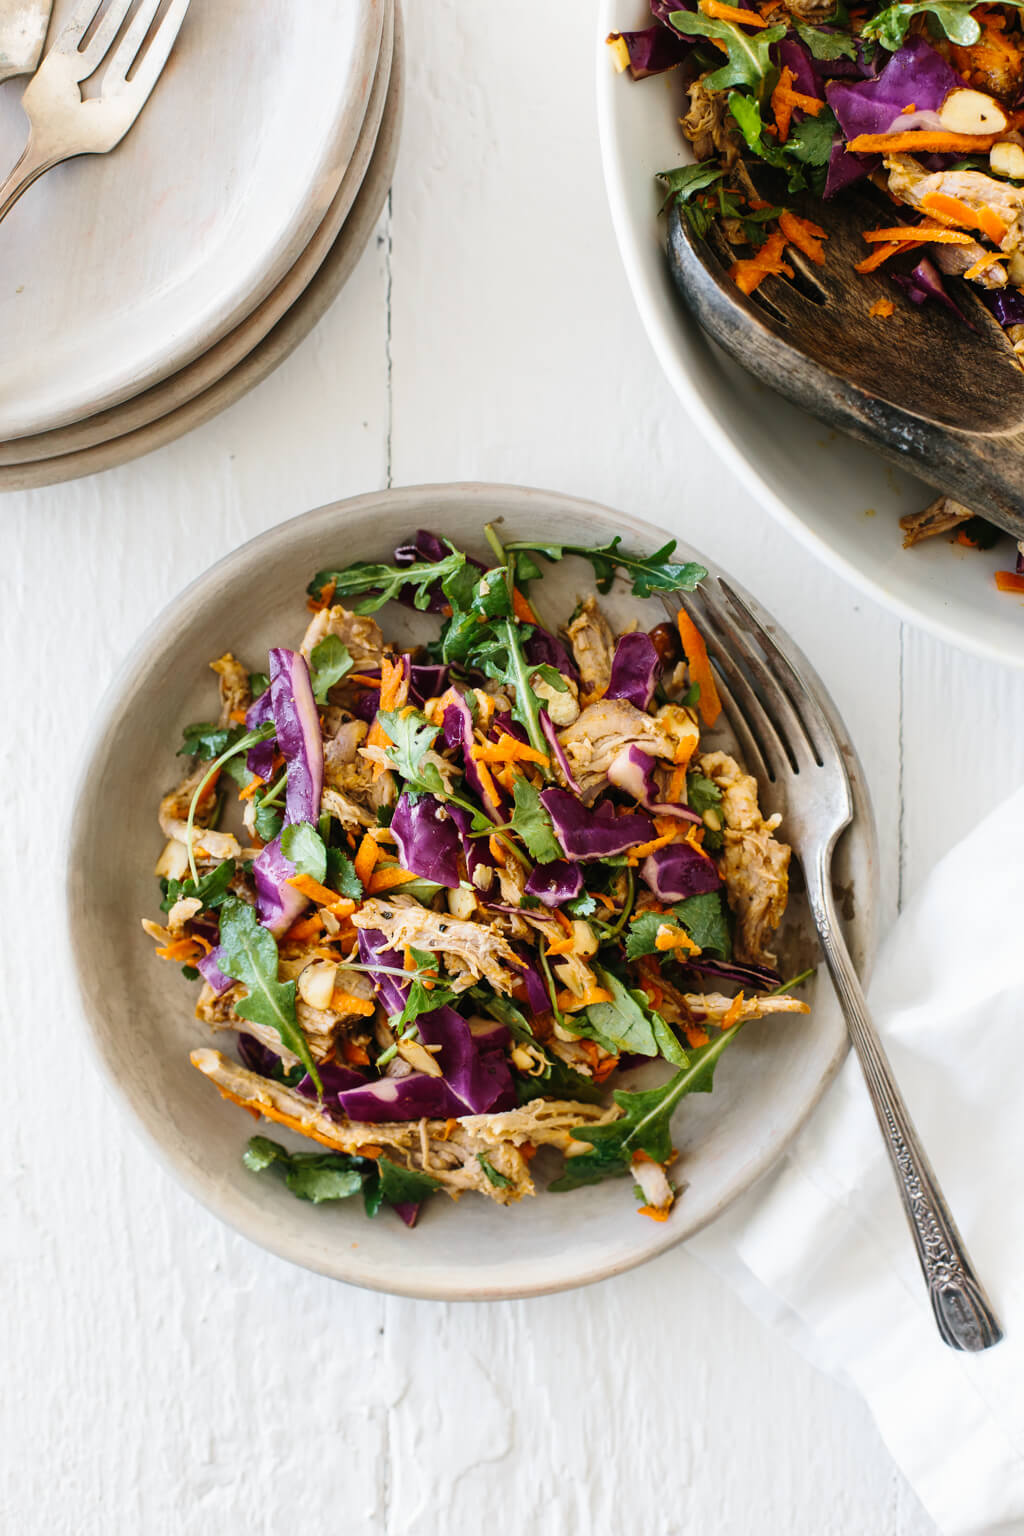 Pulled pork, cabbage and arugula salad with citrus lime vinaigrette. A hearty, flavorful and healthy salad recipe.